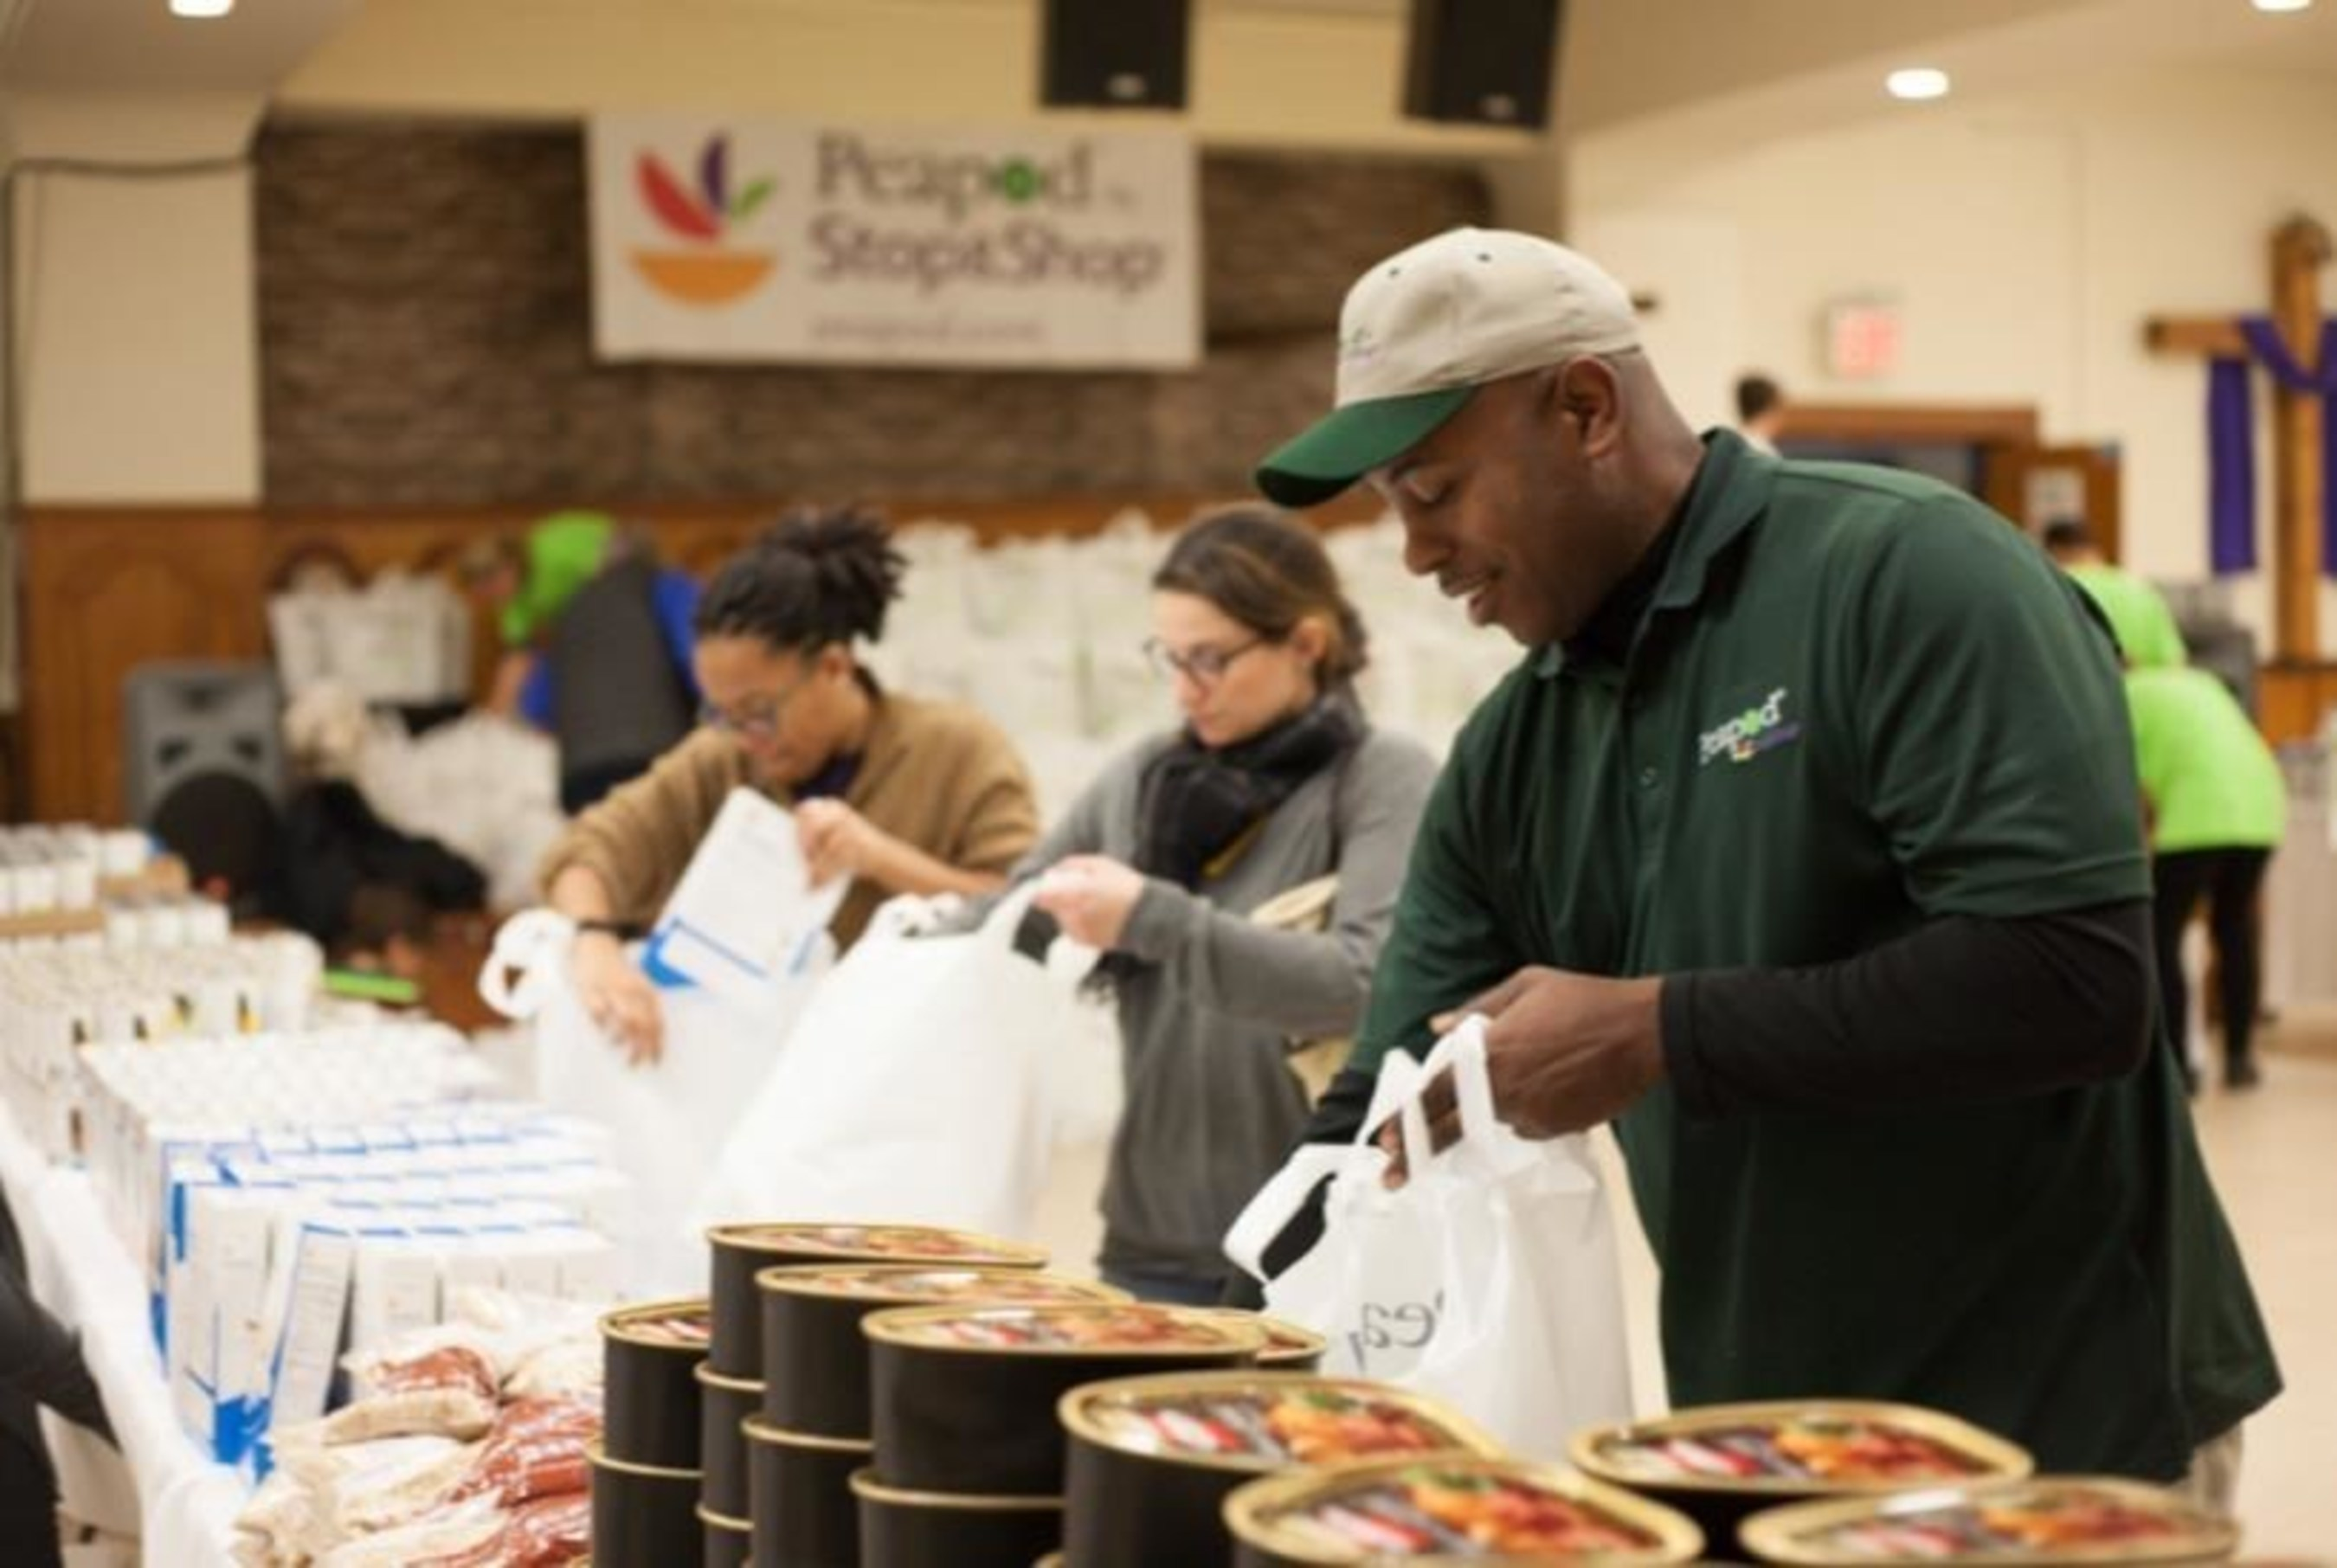 Volunteers help assemble more than 400 bags of groceries for neighbors in need this holiday season at the Recovery House of Worship in Brooklyn, NY, on Dec. 13, 2014, as part of a $10,000 food donation from Peapod by Stop & Shop. Peapod is the country's leading online grocery service and recently expanded service in the New York metro area, now operating in all five New York City boroughs. (Photo: Sara Haile)